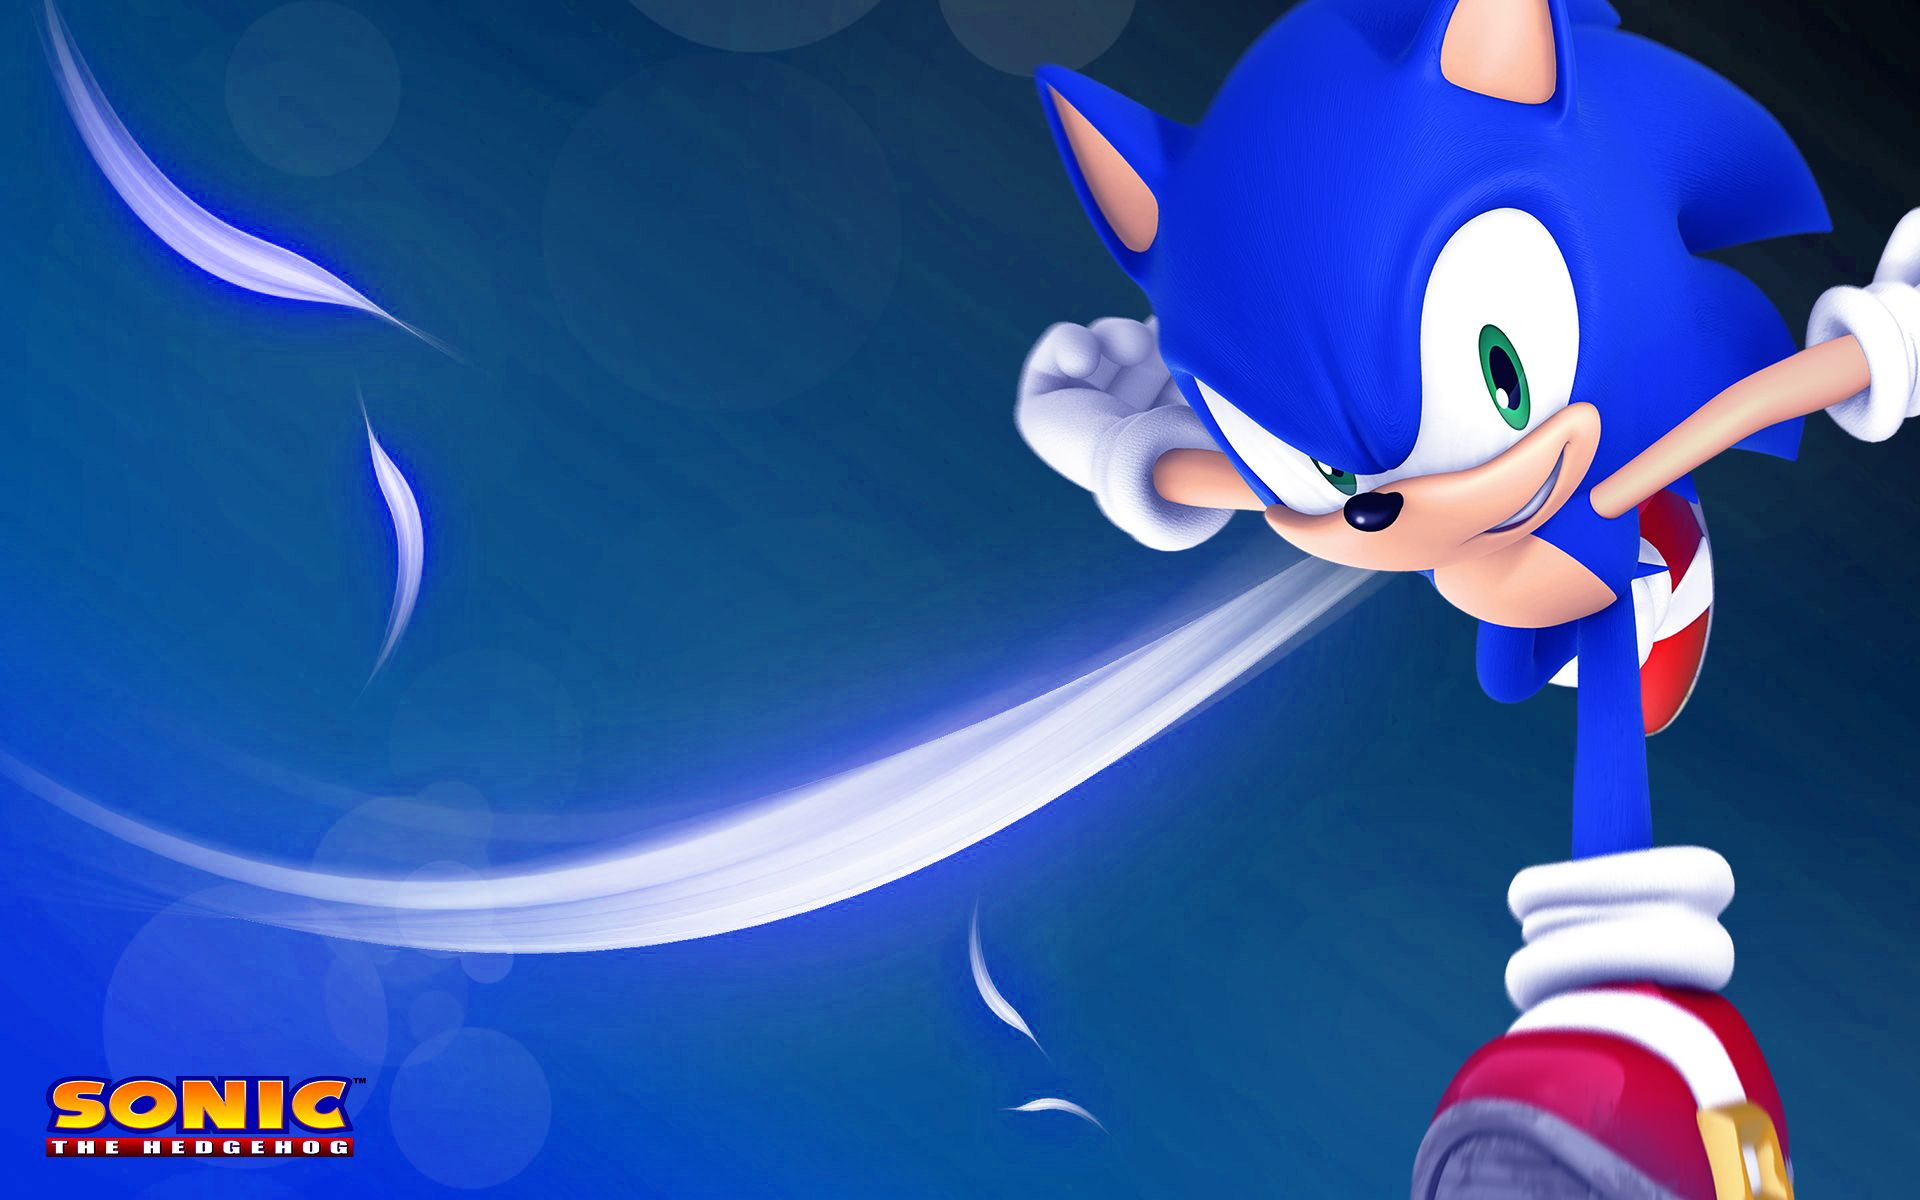 Sonic The Hedgehog Wallpapers Hd